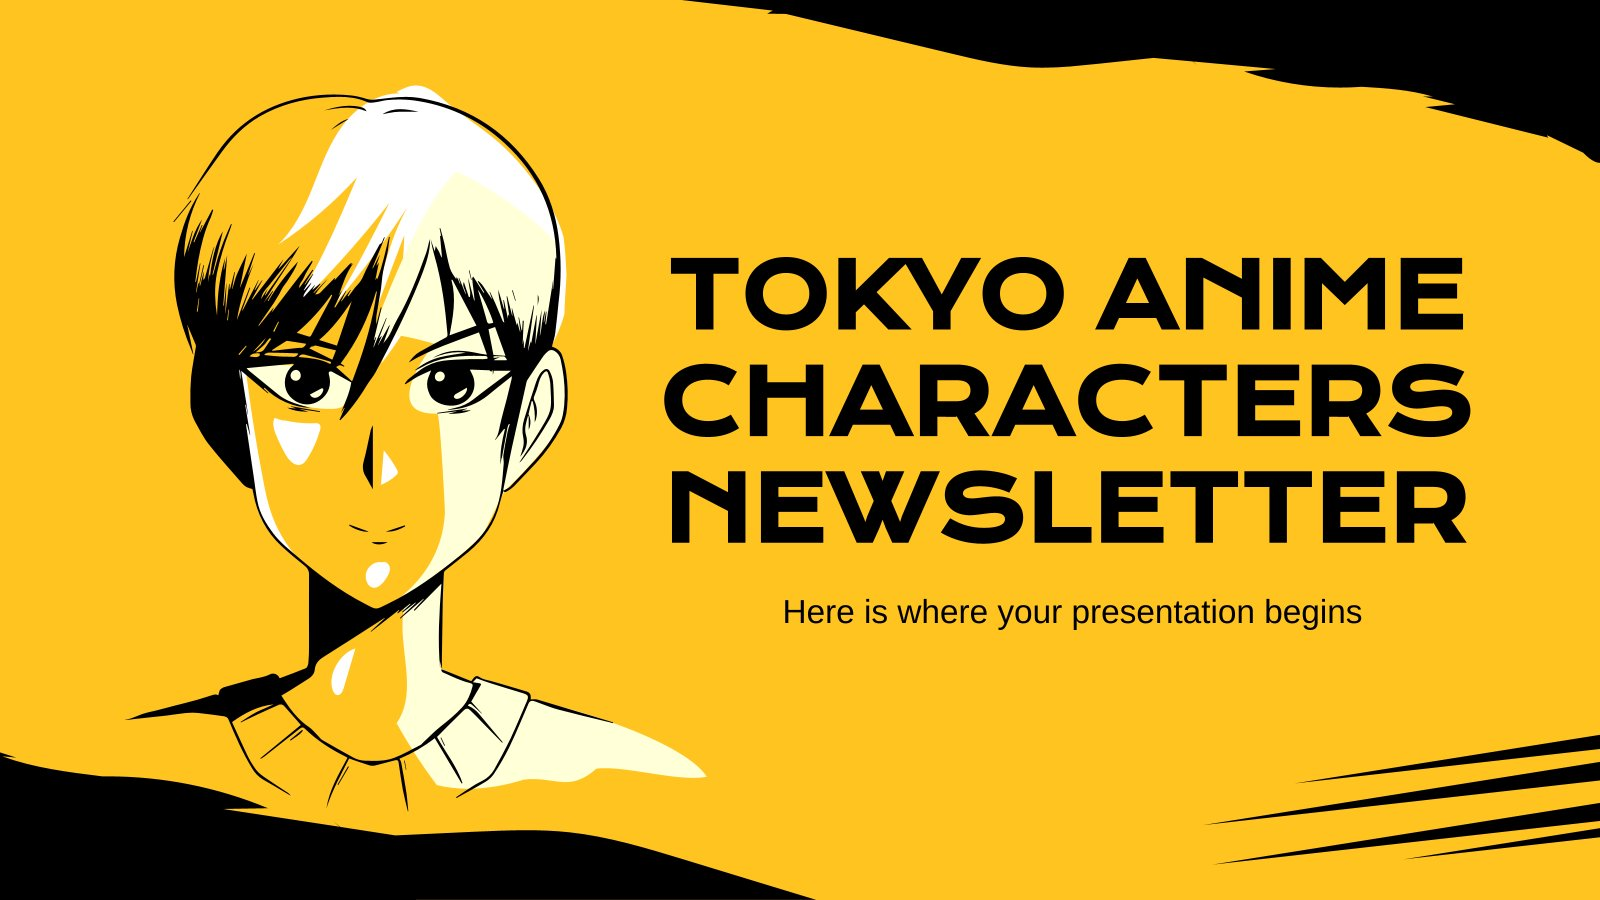 Tokyo Anime Characters Newsletter presentation template